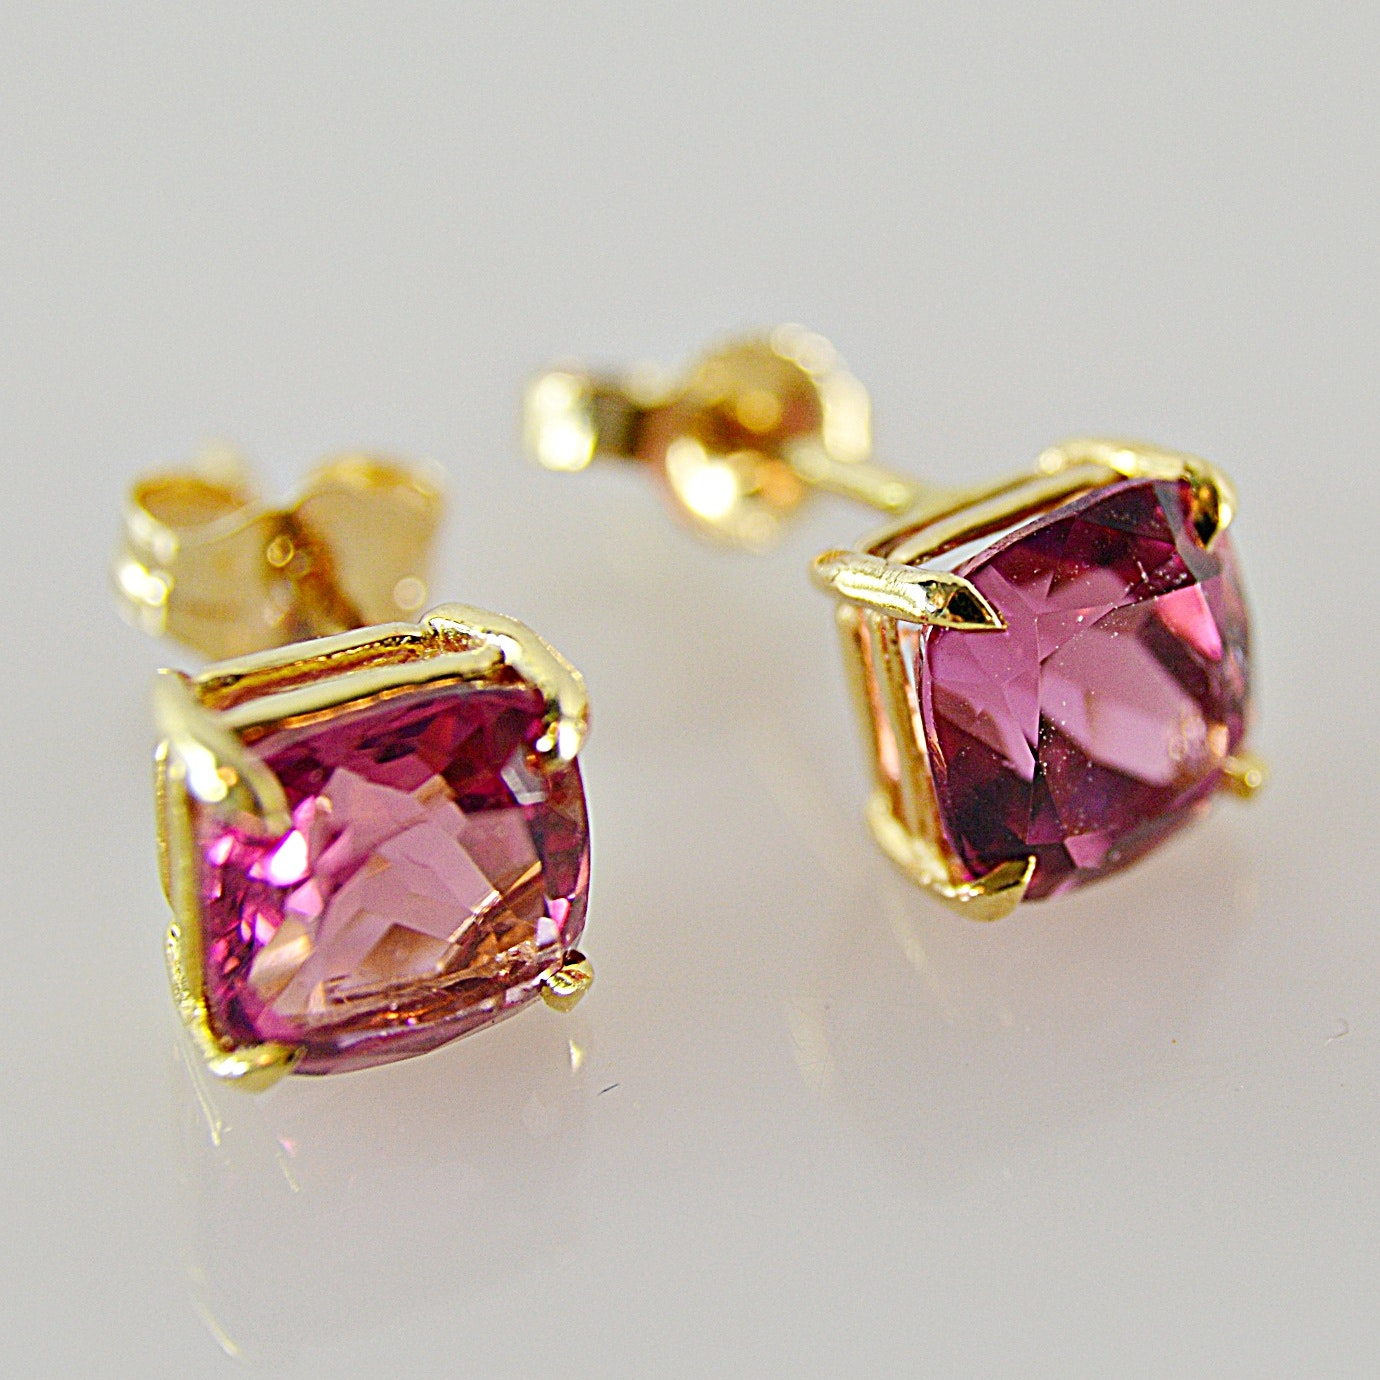 Pair of 14K Yellow Gold and Tourmaline Stud Pierced Earrings